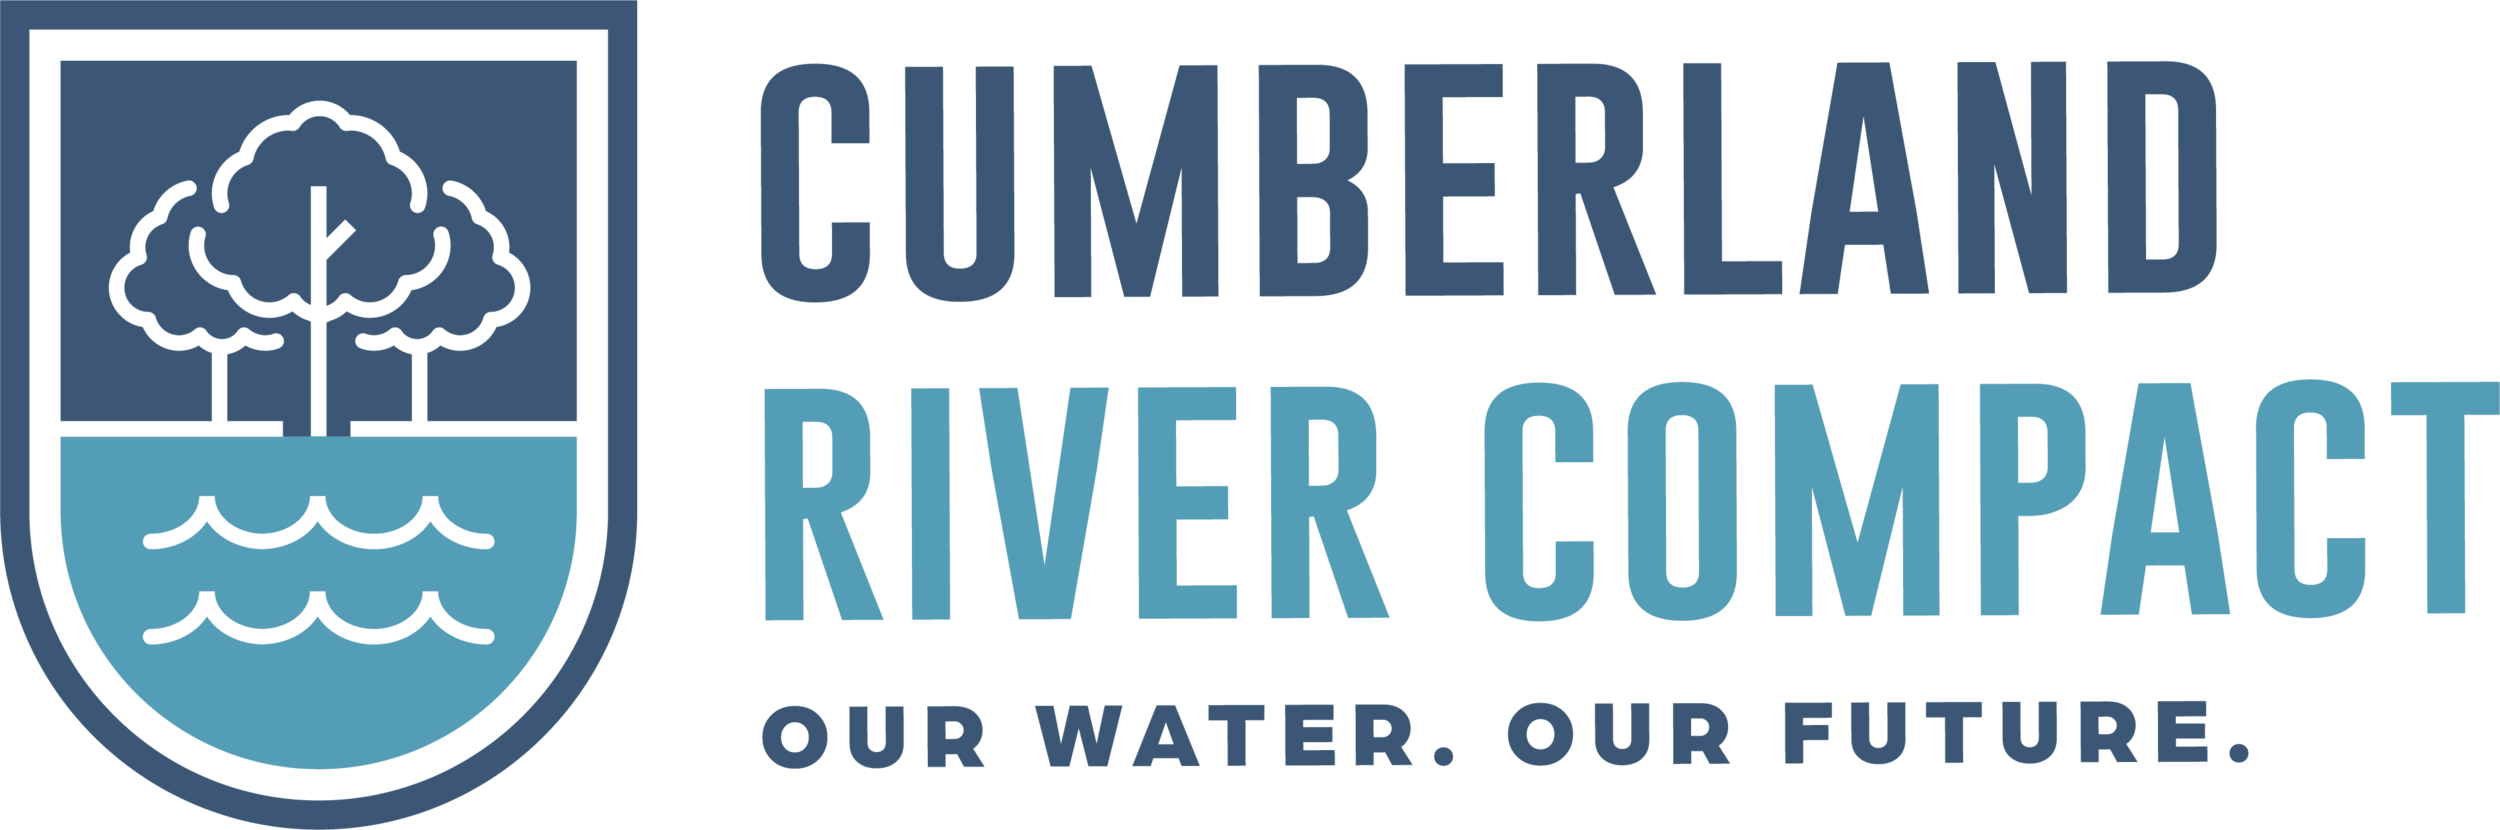 Cumberland_River_Compact_Logo_Tagline_Full_Color.png